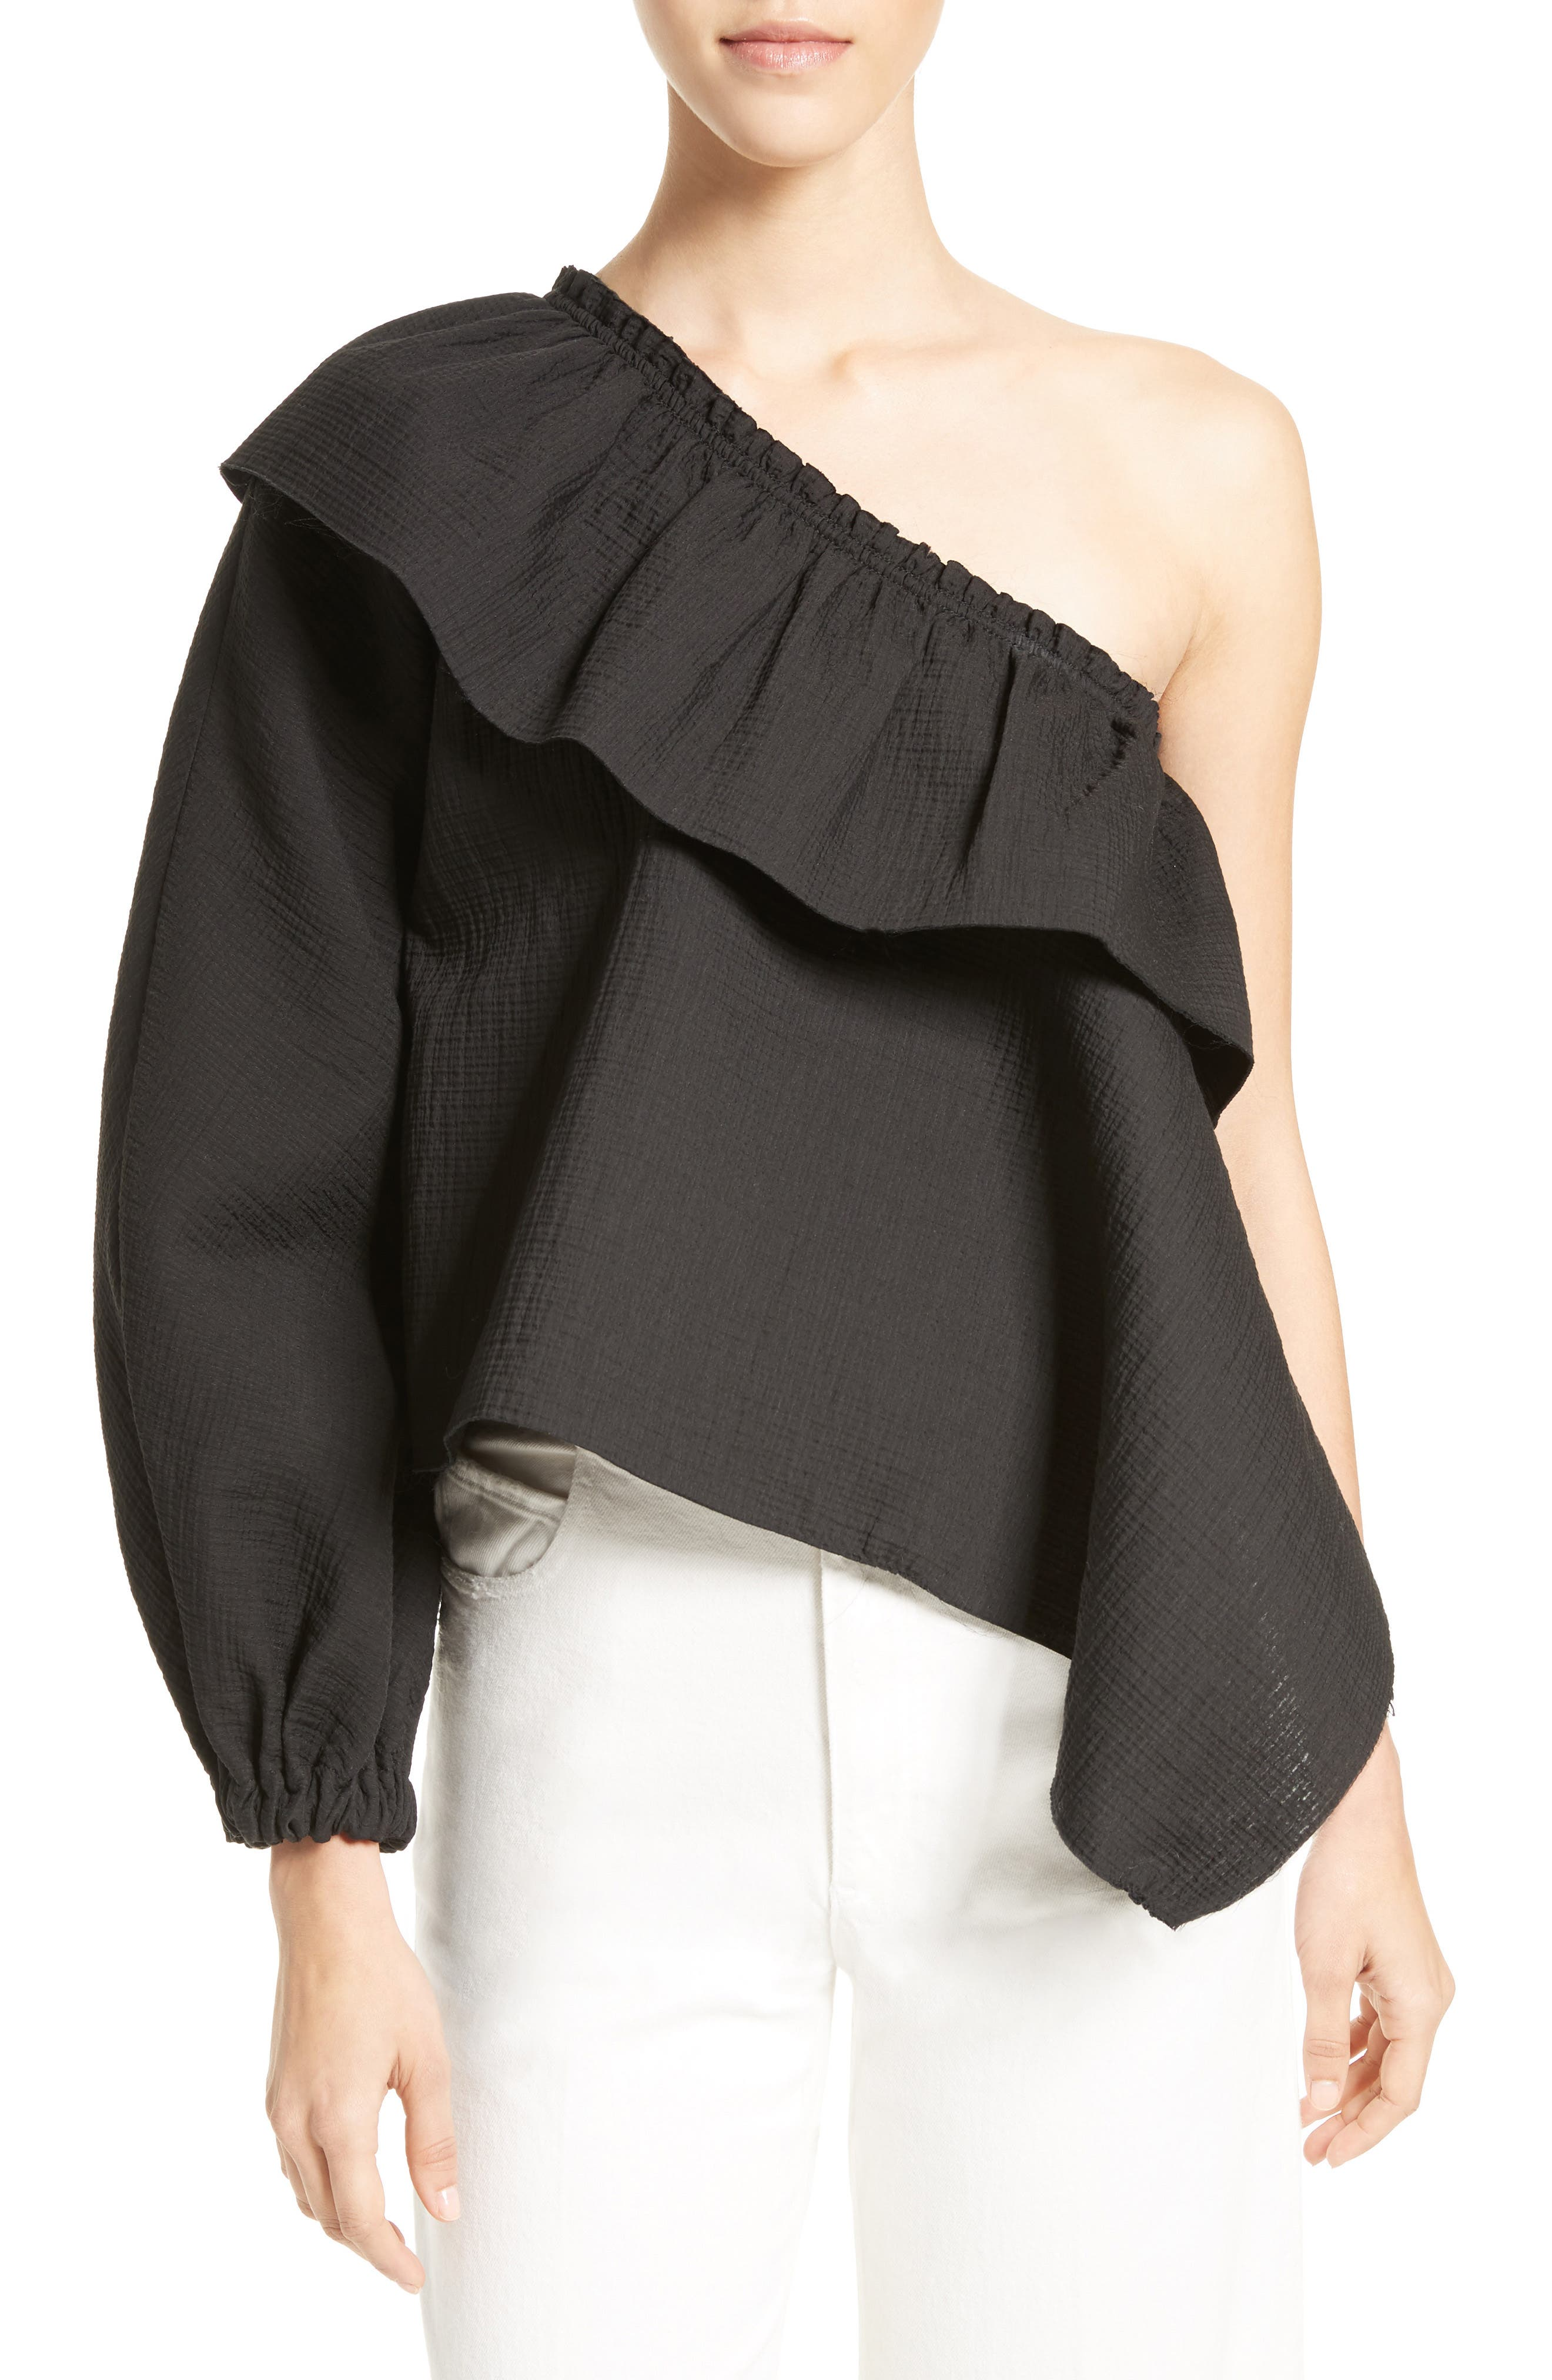 RACHEL COMEY Georgia One-Shoulder Top